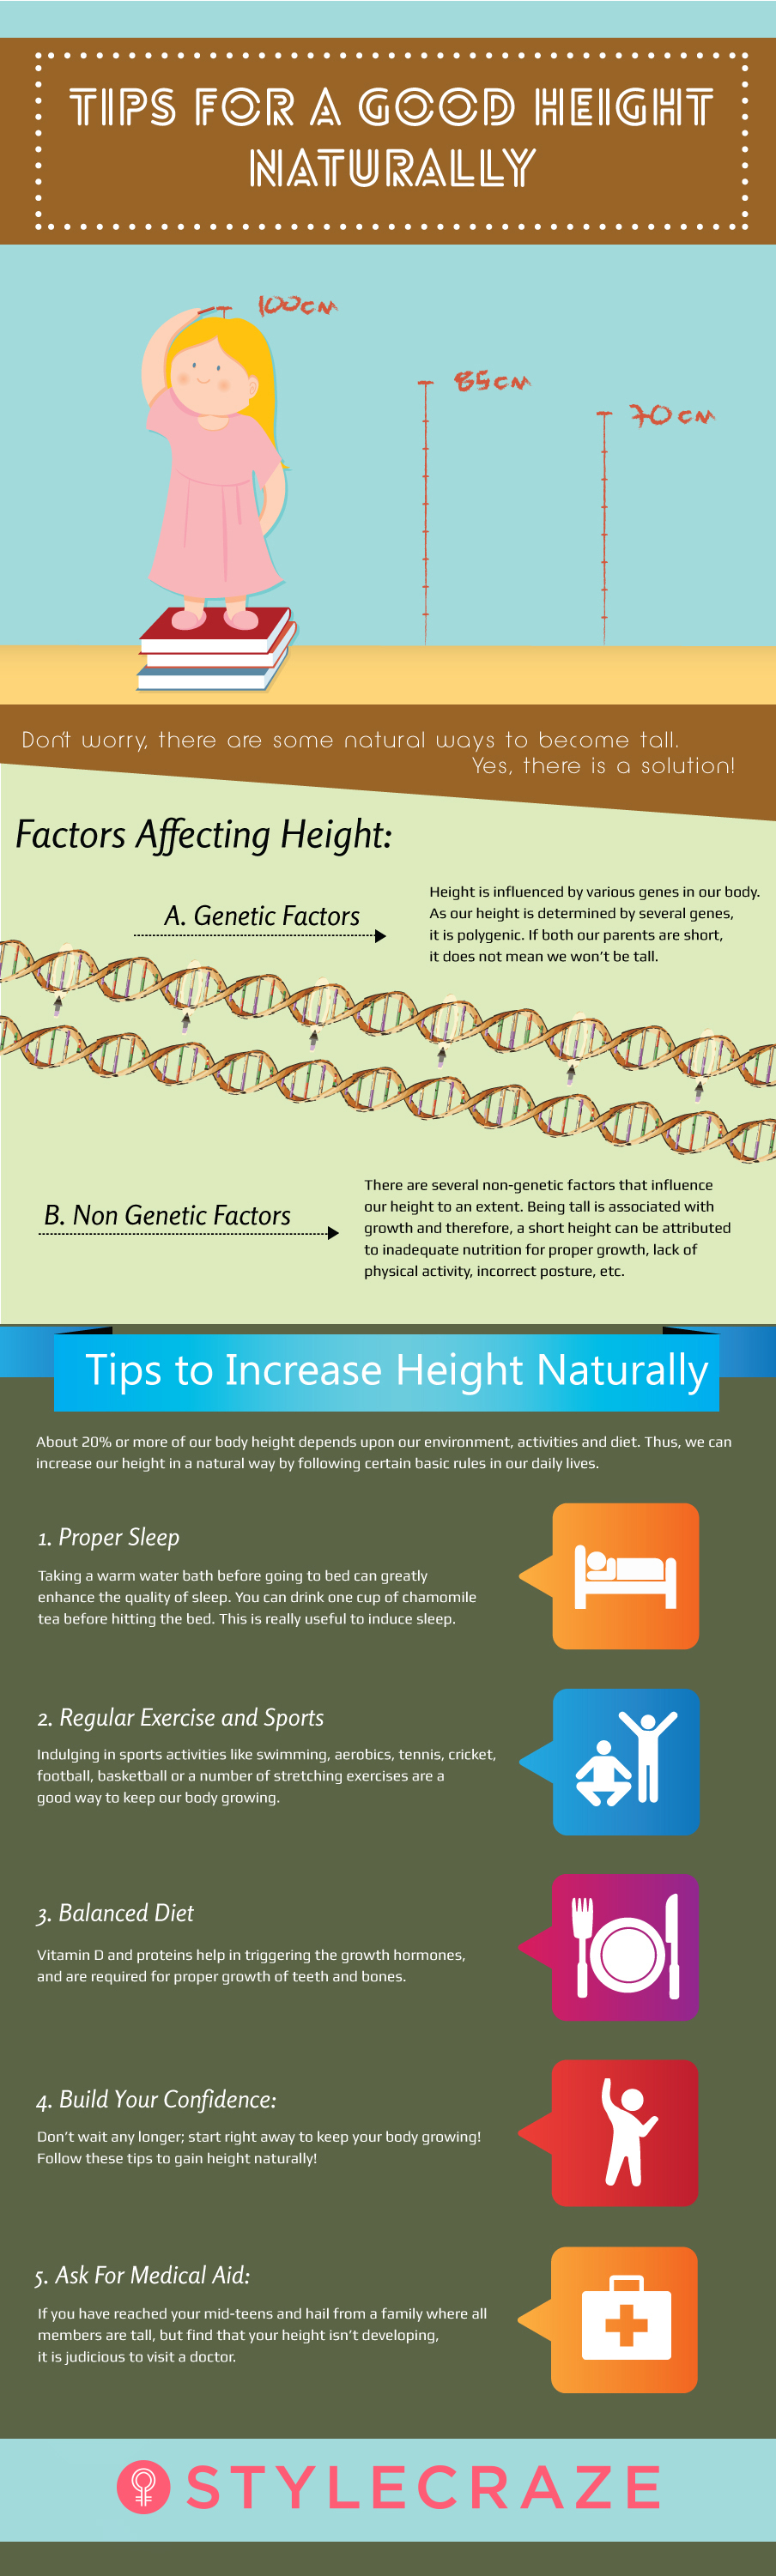 9 Simple Tips To Increase Height Naturally